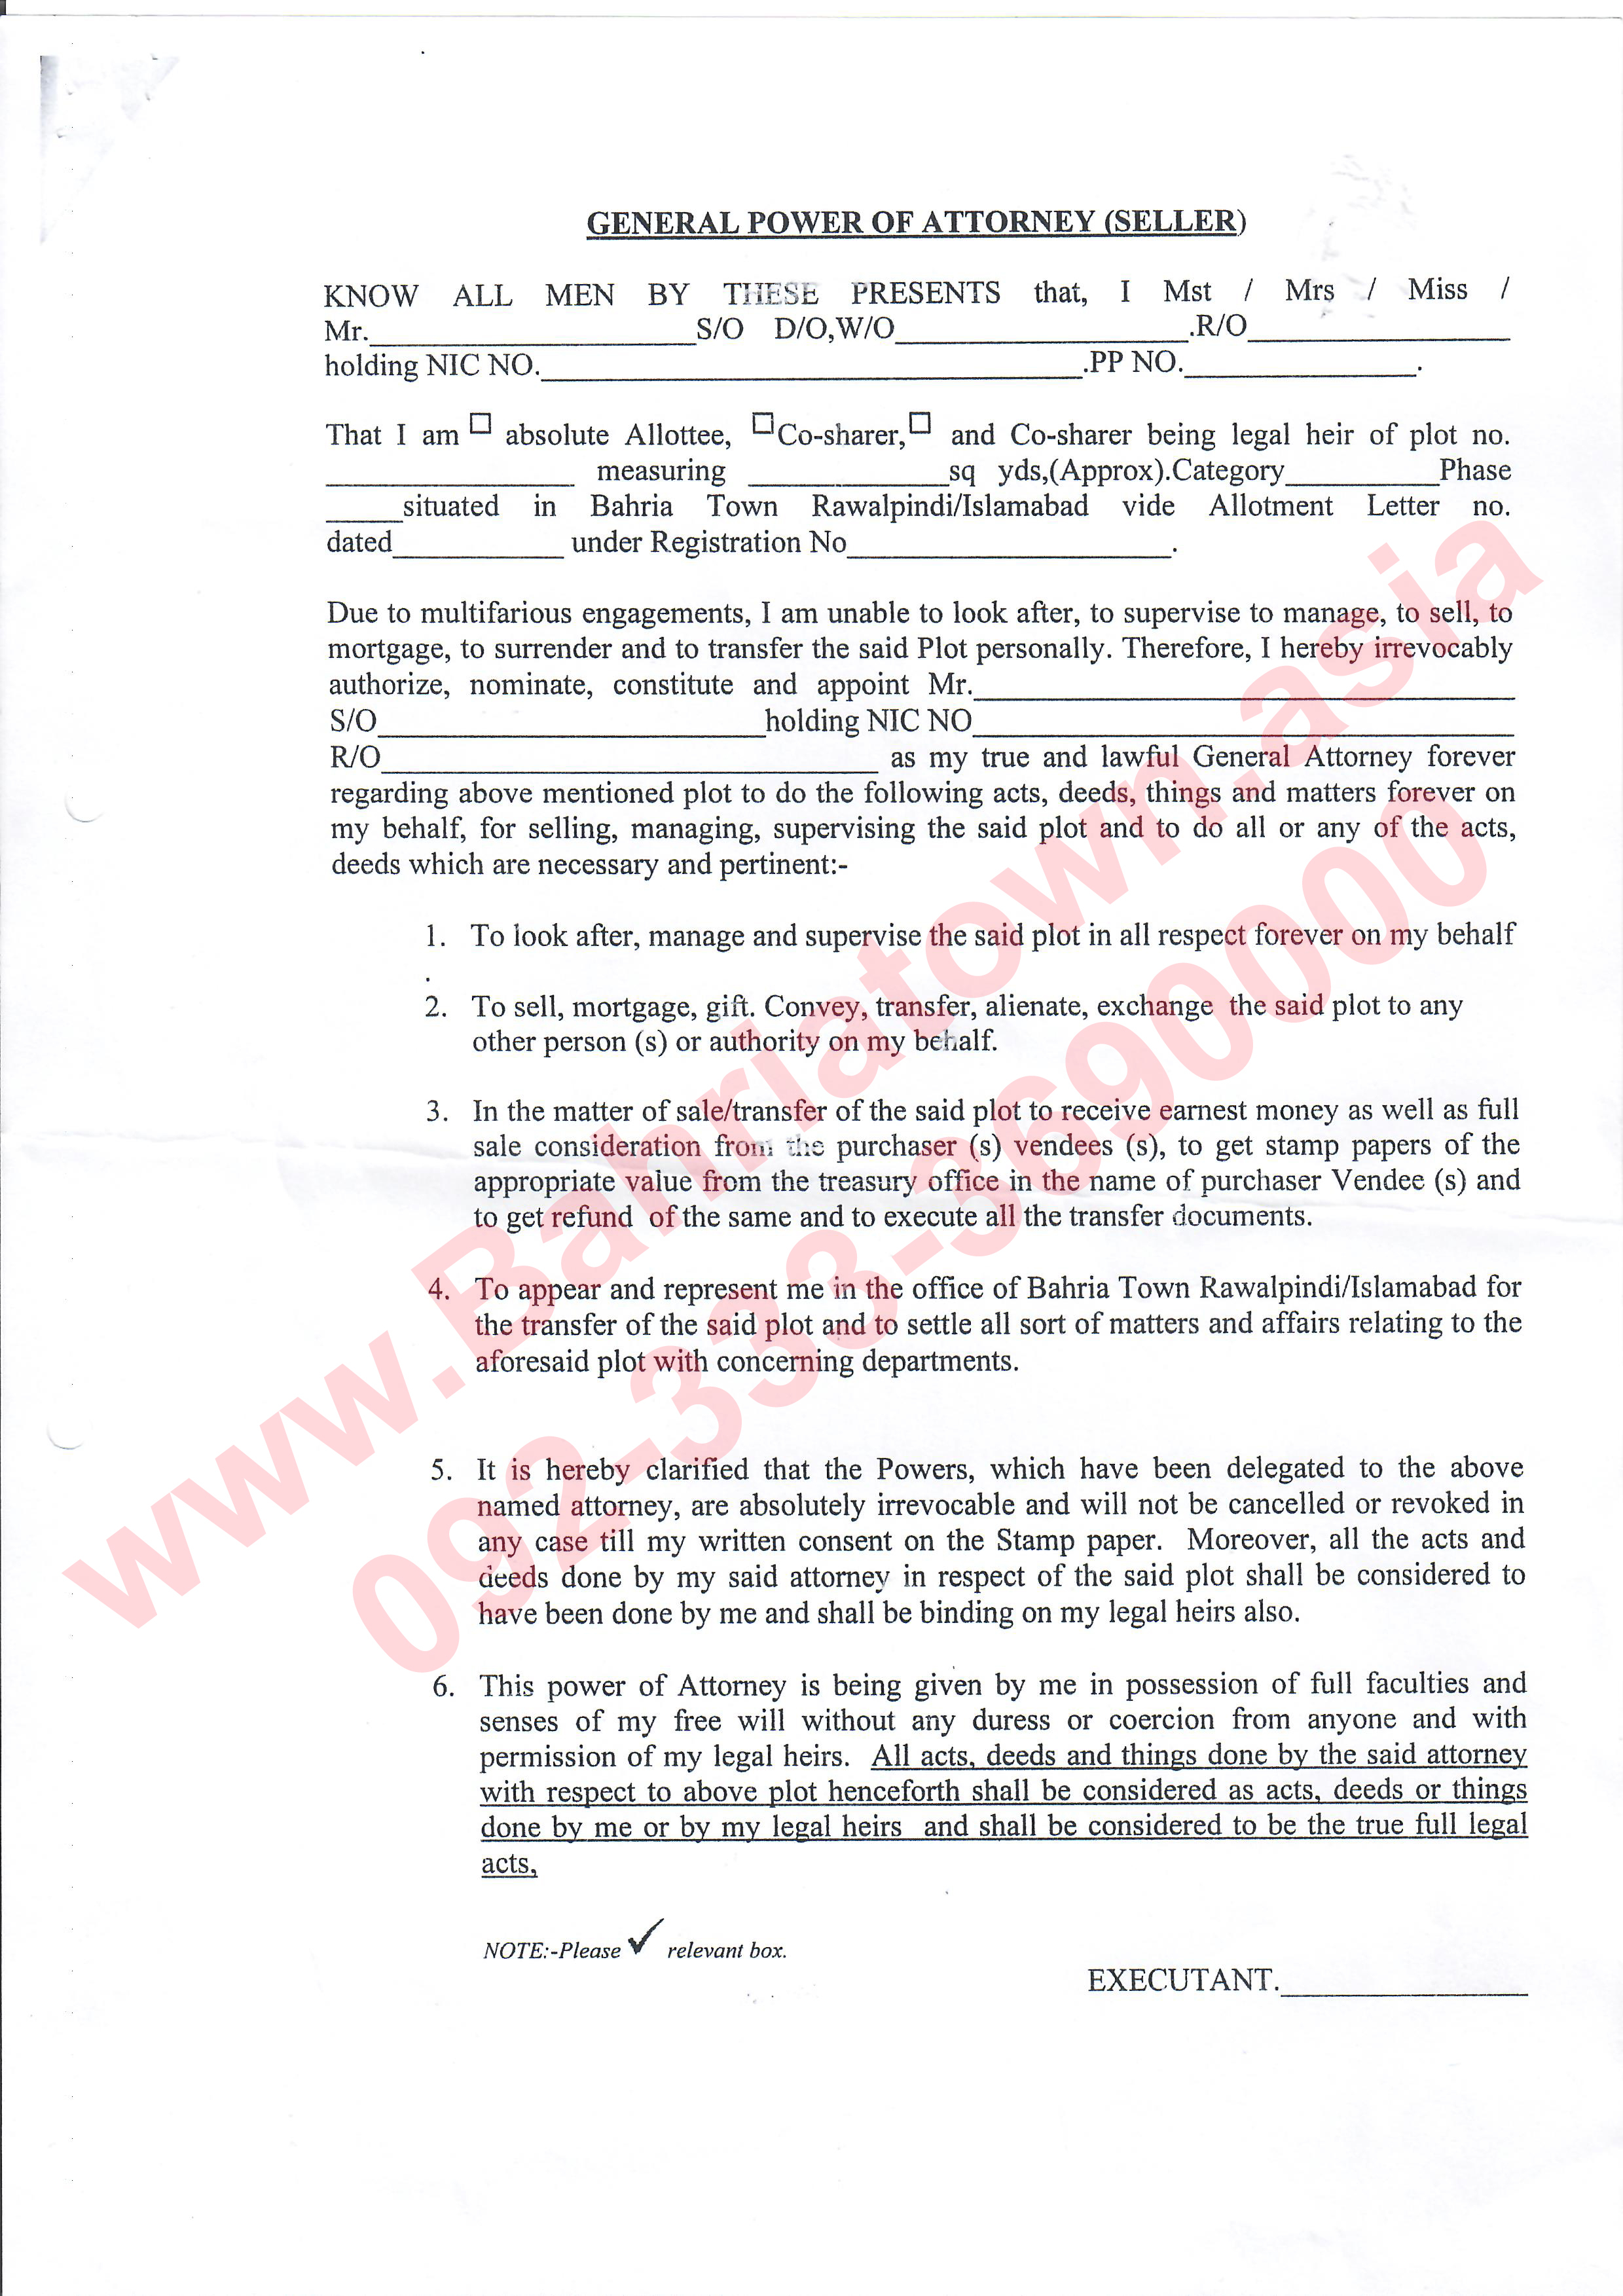 General Power Of attorney Letter Template - General Power Of attorney for Bahria town Rawalpindi islamabad